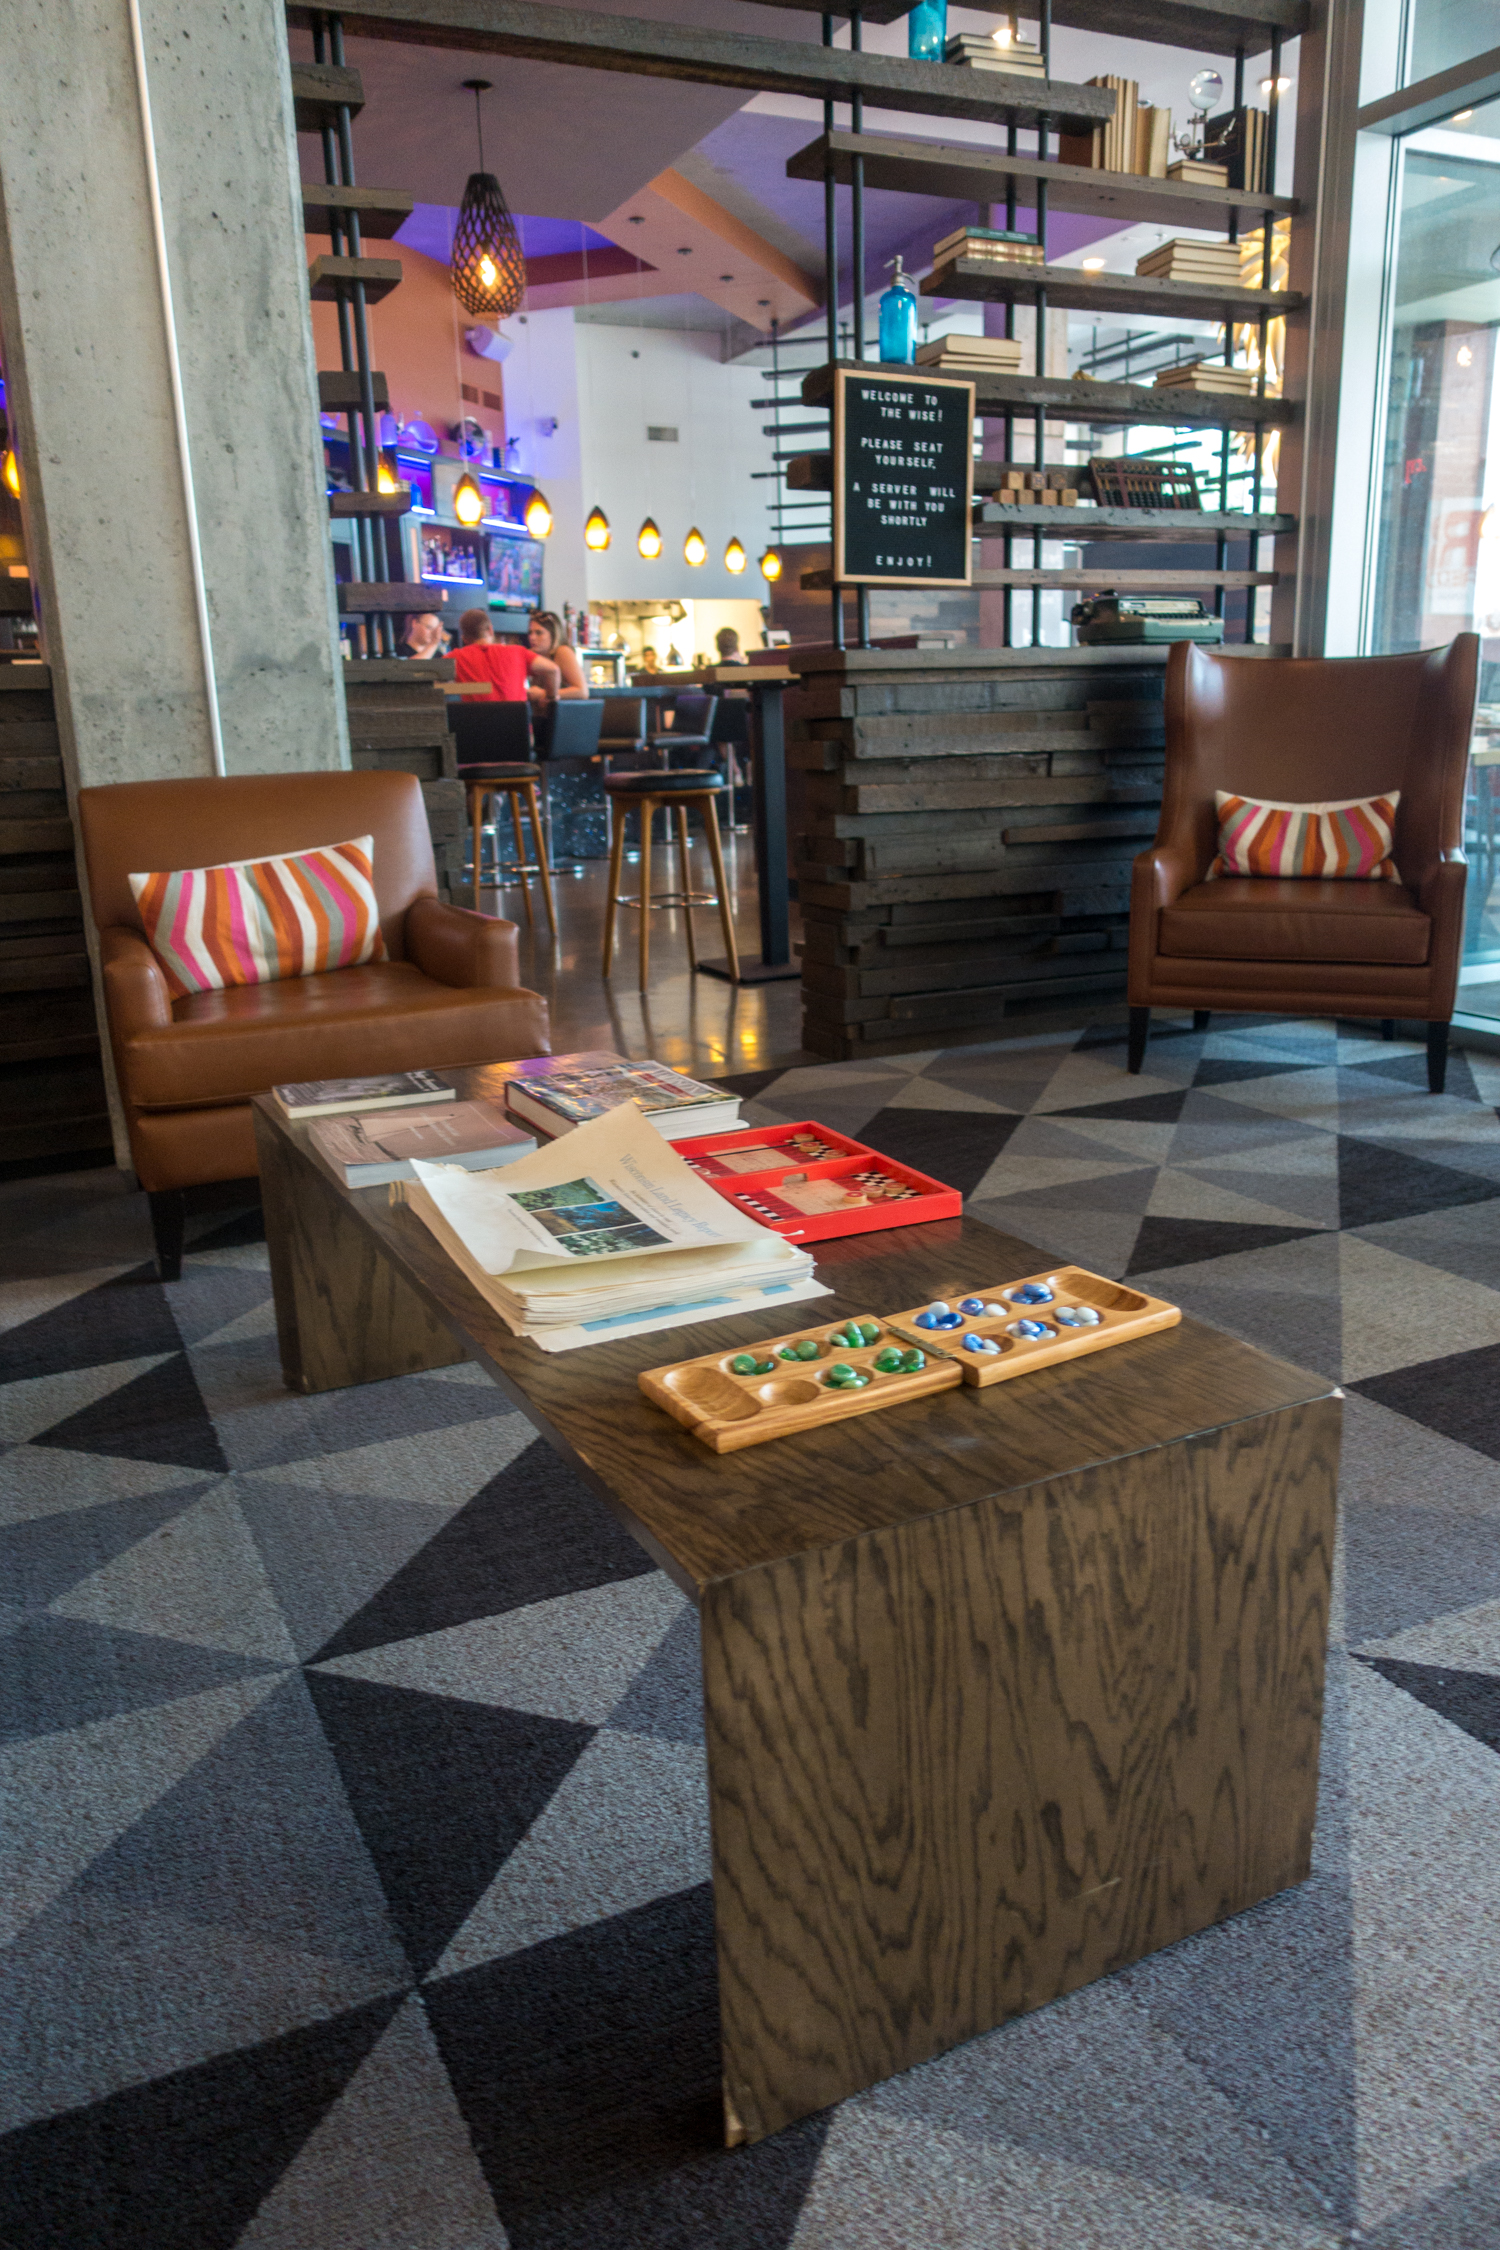 Where to stay in Madison, Wi. #hotel #Madison #wisconsin #petfriendly